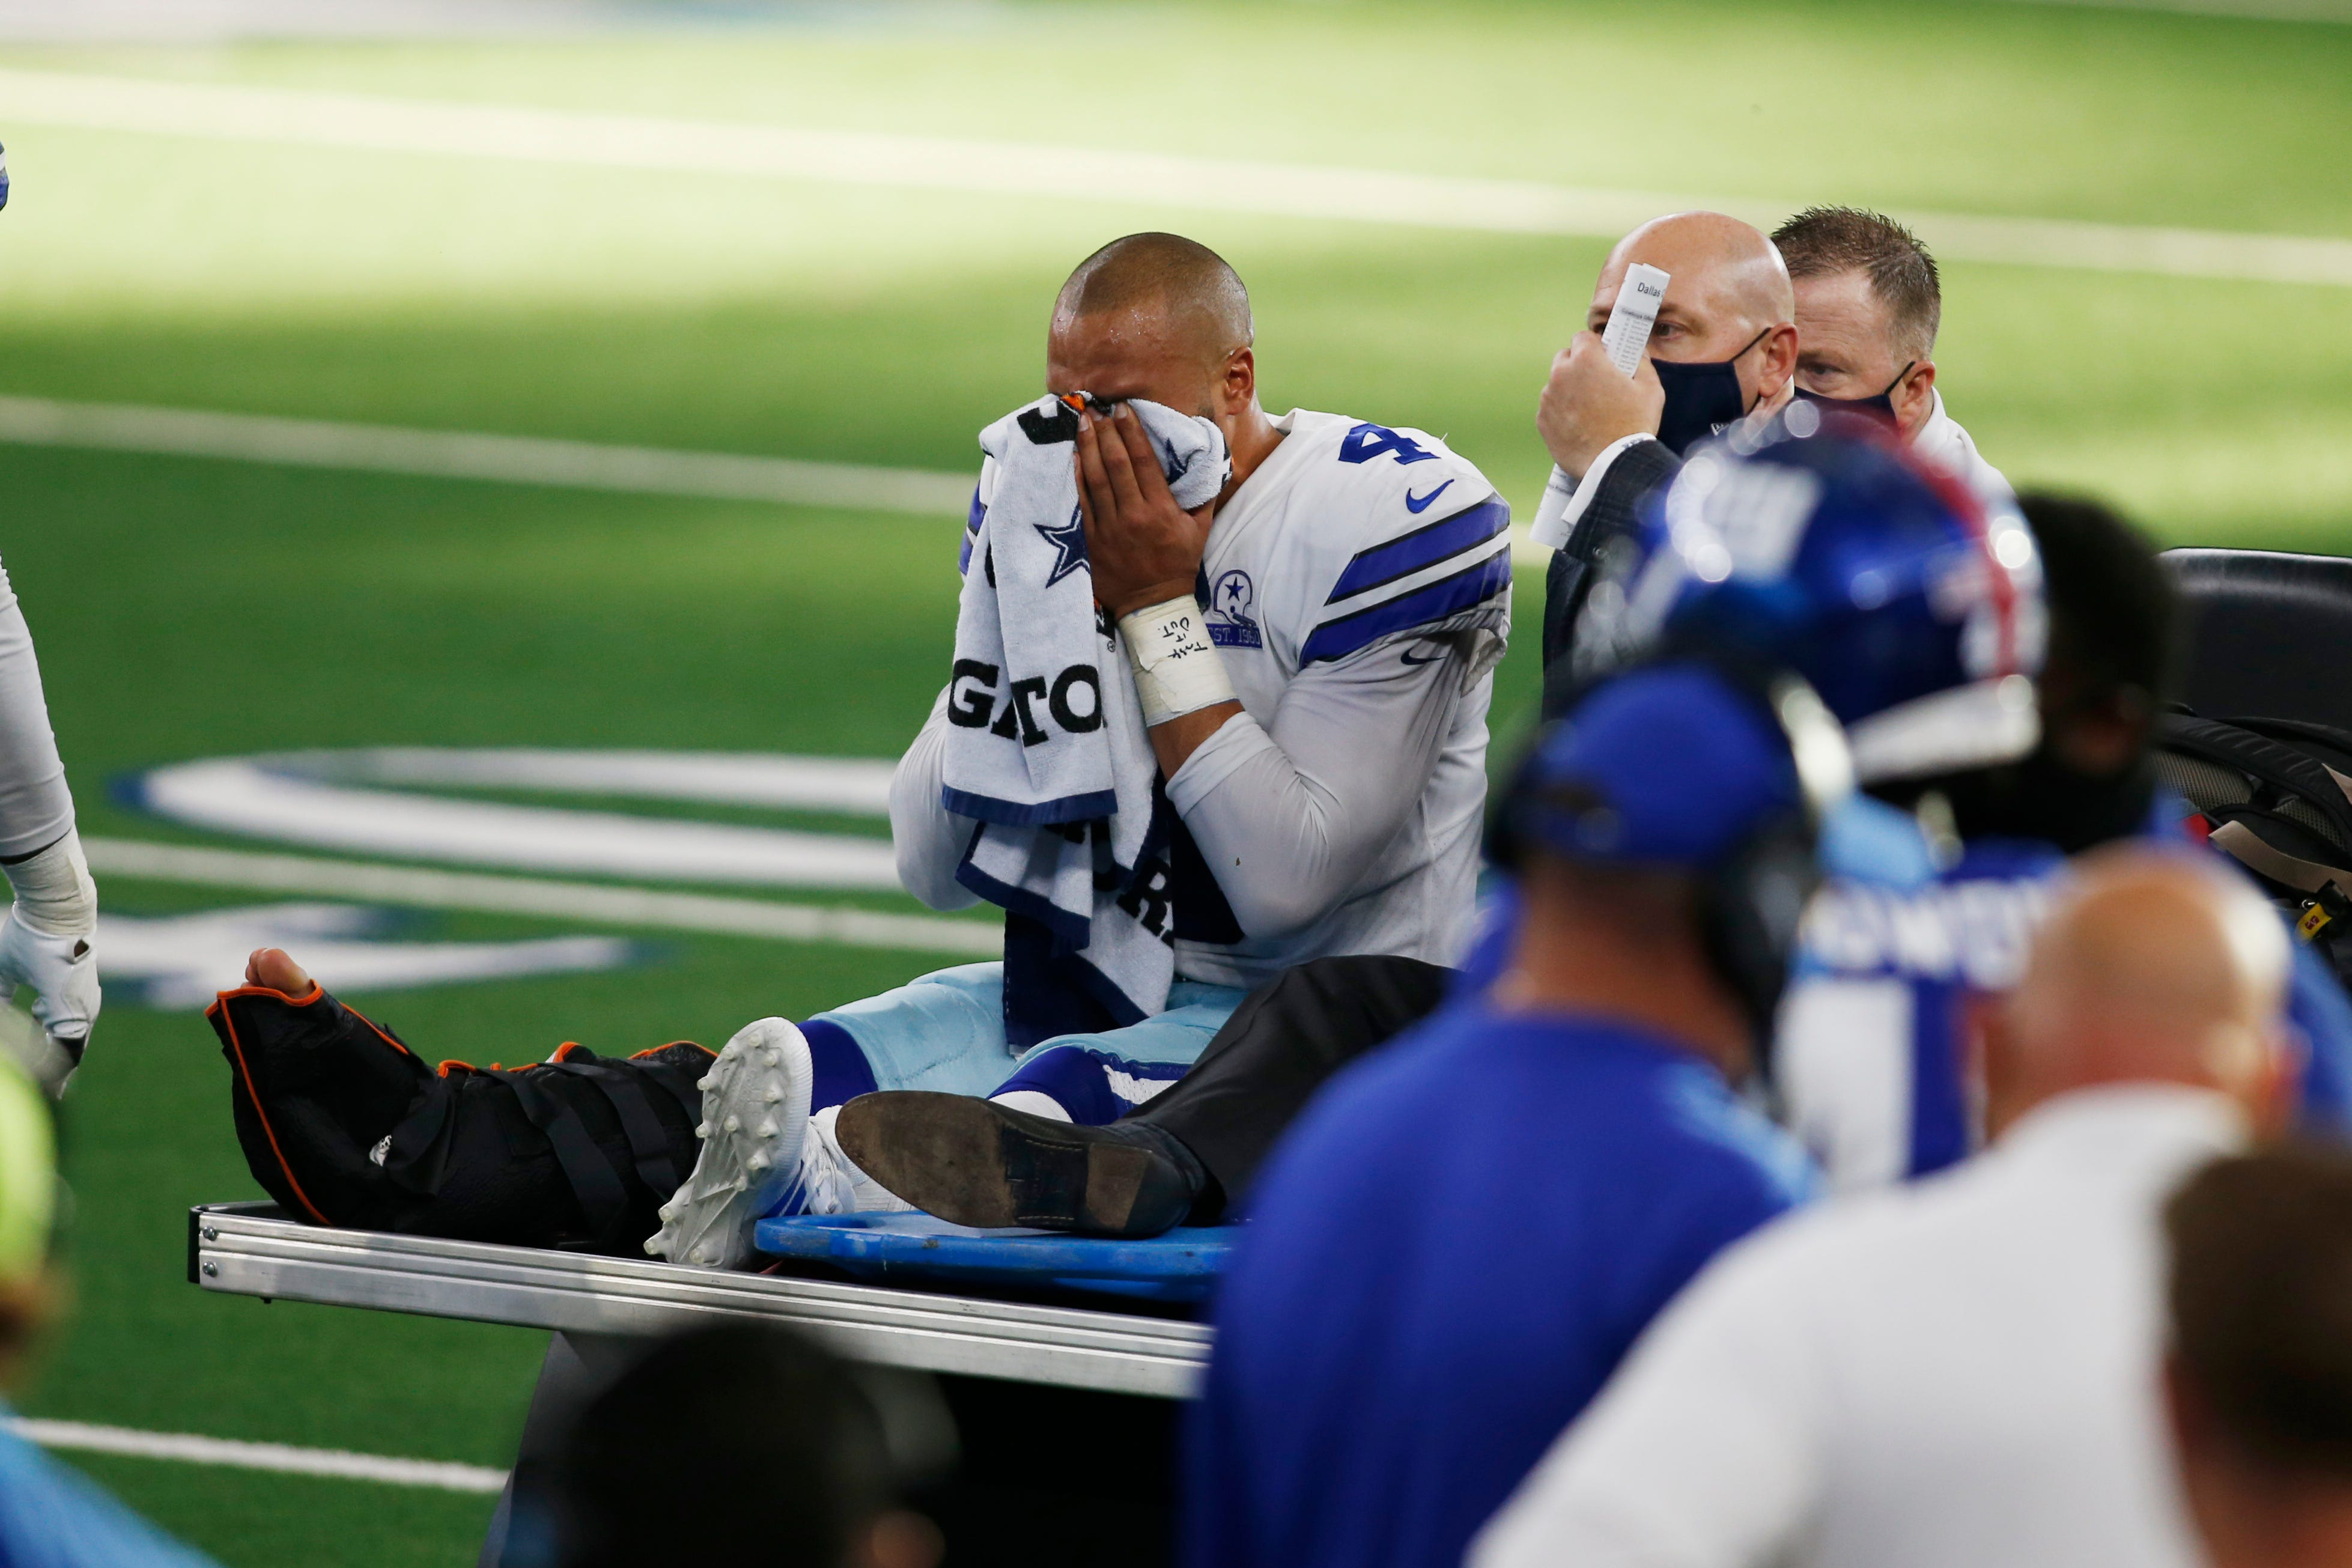 Cowboys QB Dak Prescott carted off in tears, sent to hospital after gruesome ankle injury